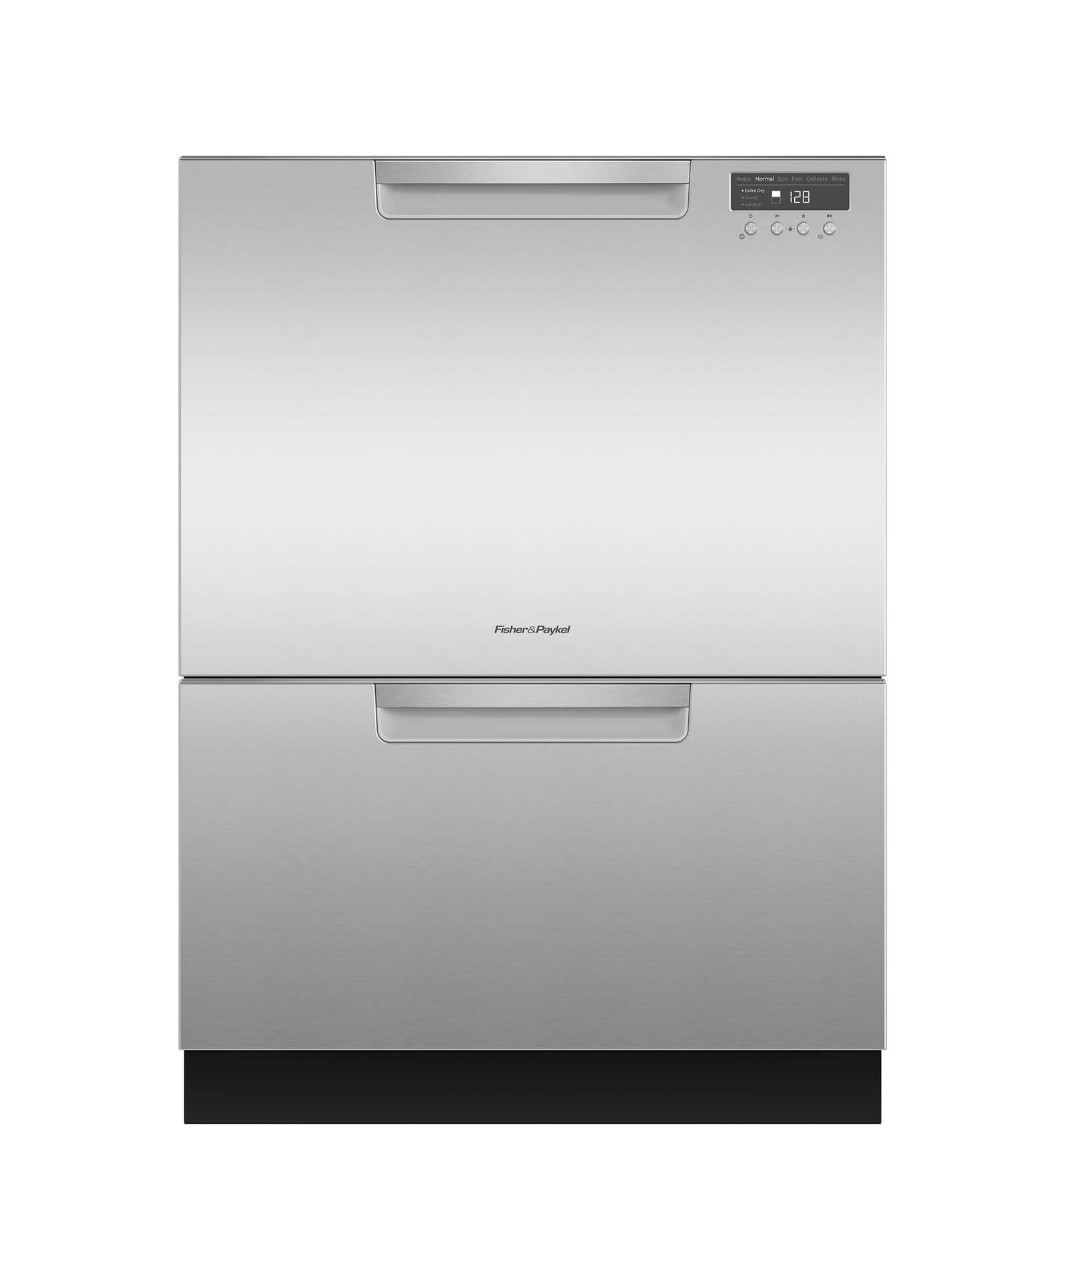 Fisher and Paykel Tall Double DishDrawer dishwasher incl Sanitize, Extra Dry and full flex racking